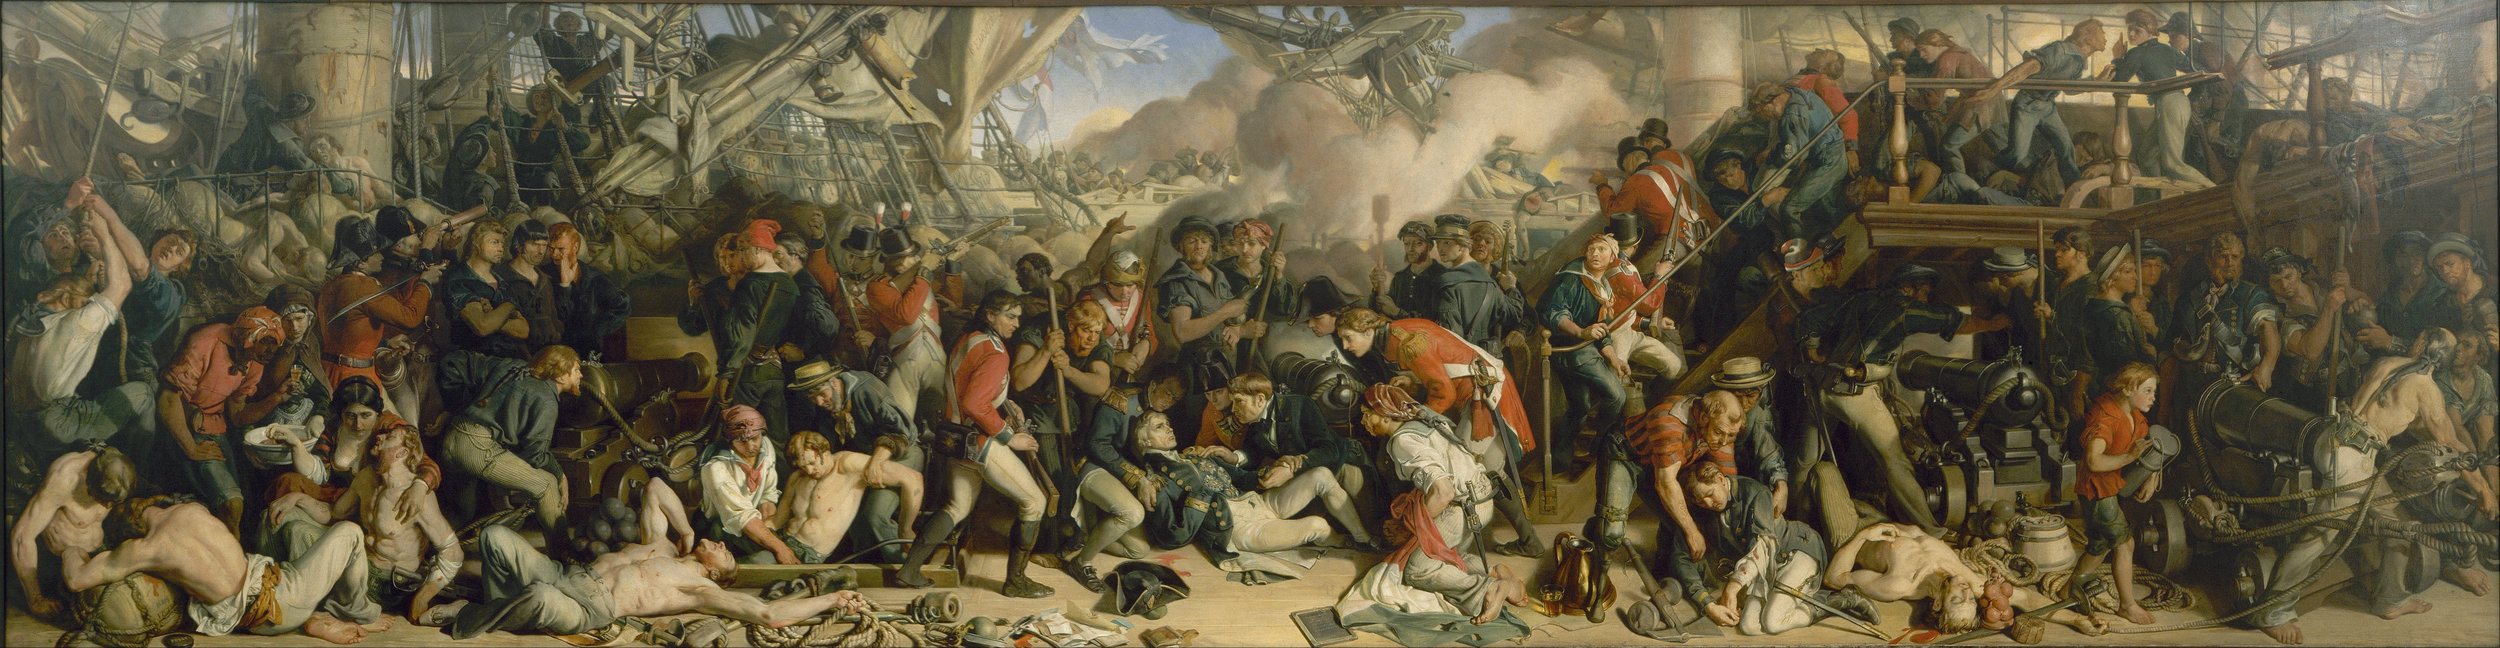 """The Death of Nelson"" painted by Daniel Maclise (Wikimedia)"